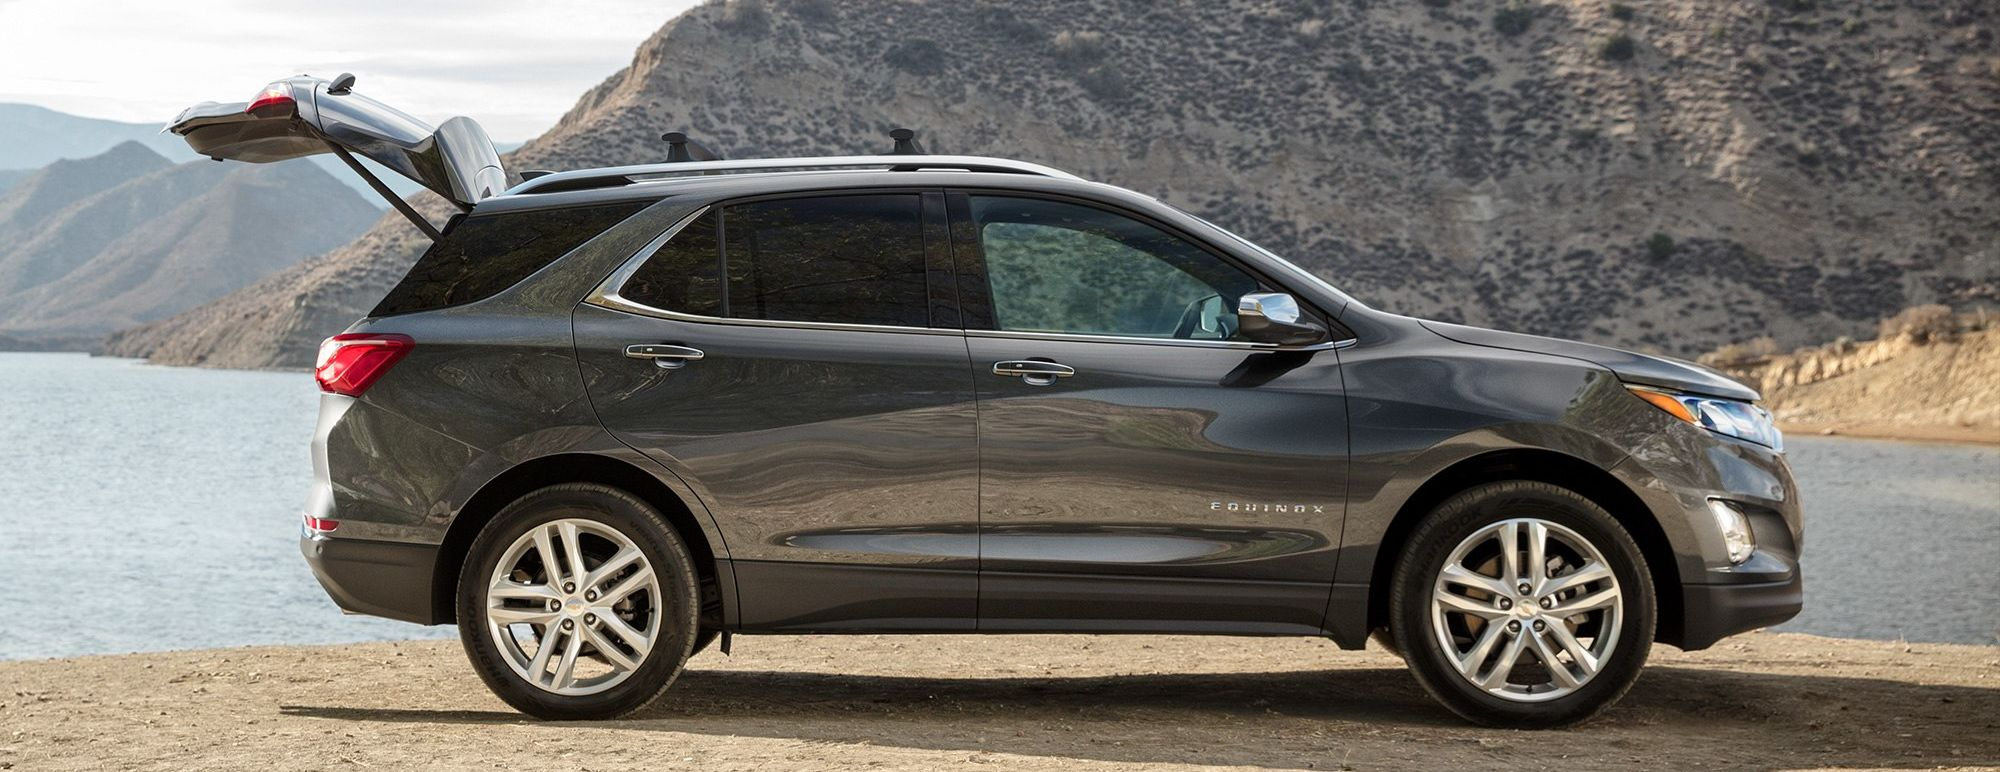 Used Chevrolet Equinox for Sale near Boardman, OH